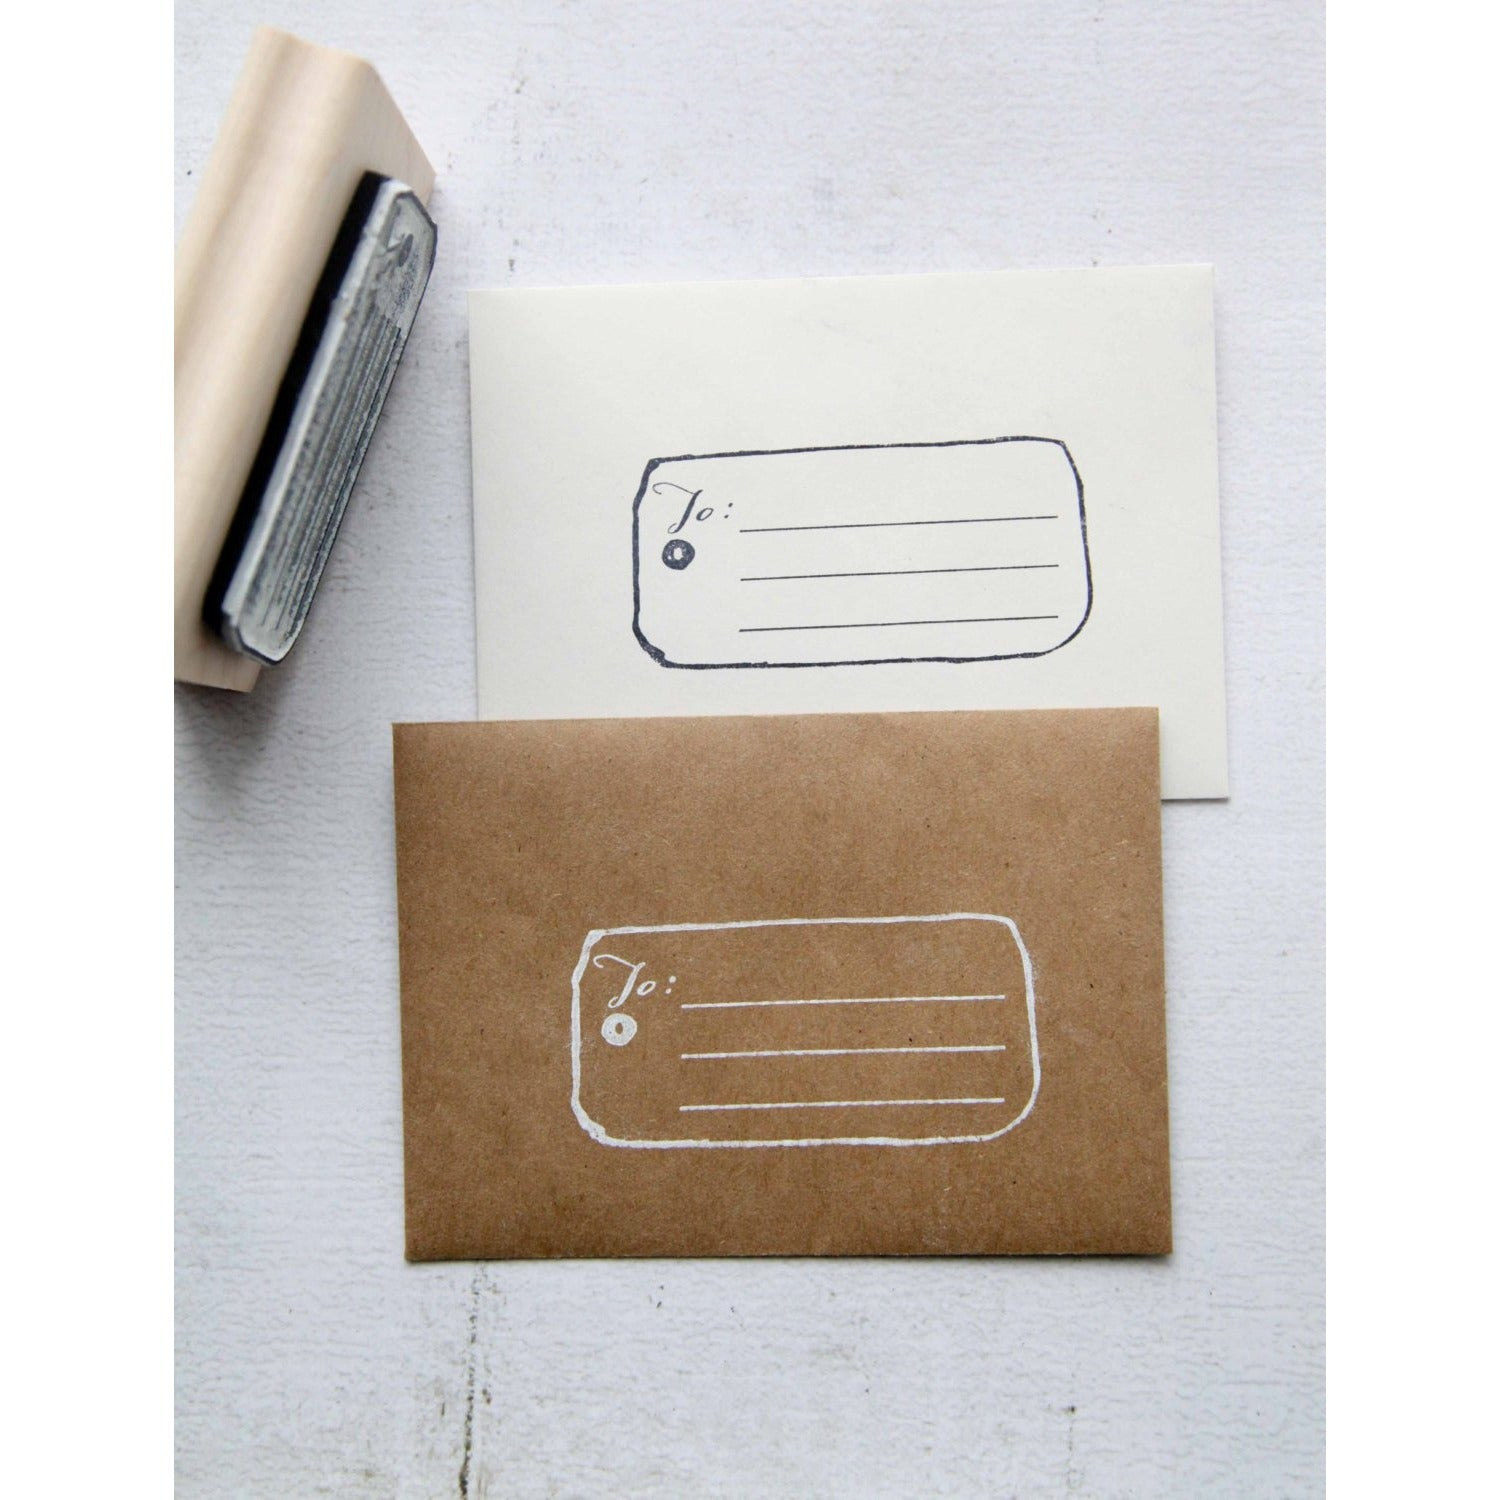 Christmas Rubber Stamp, Gift Tag Rubber Stamp, Address Rubber Stamp